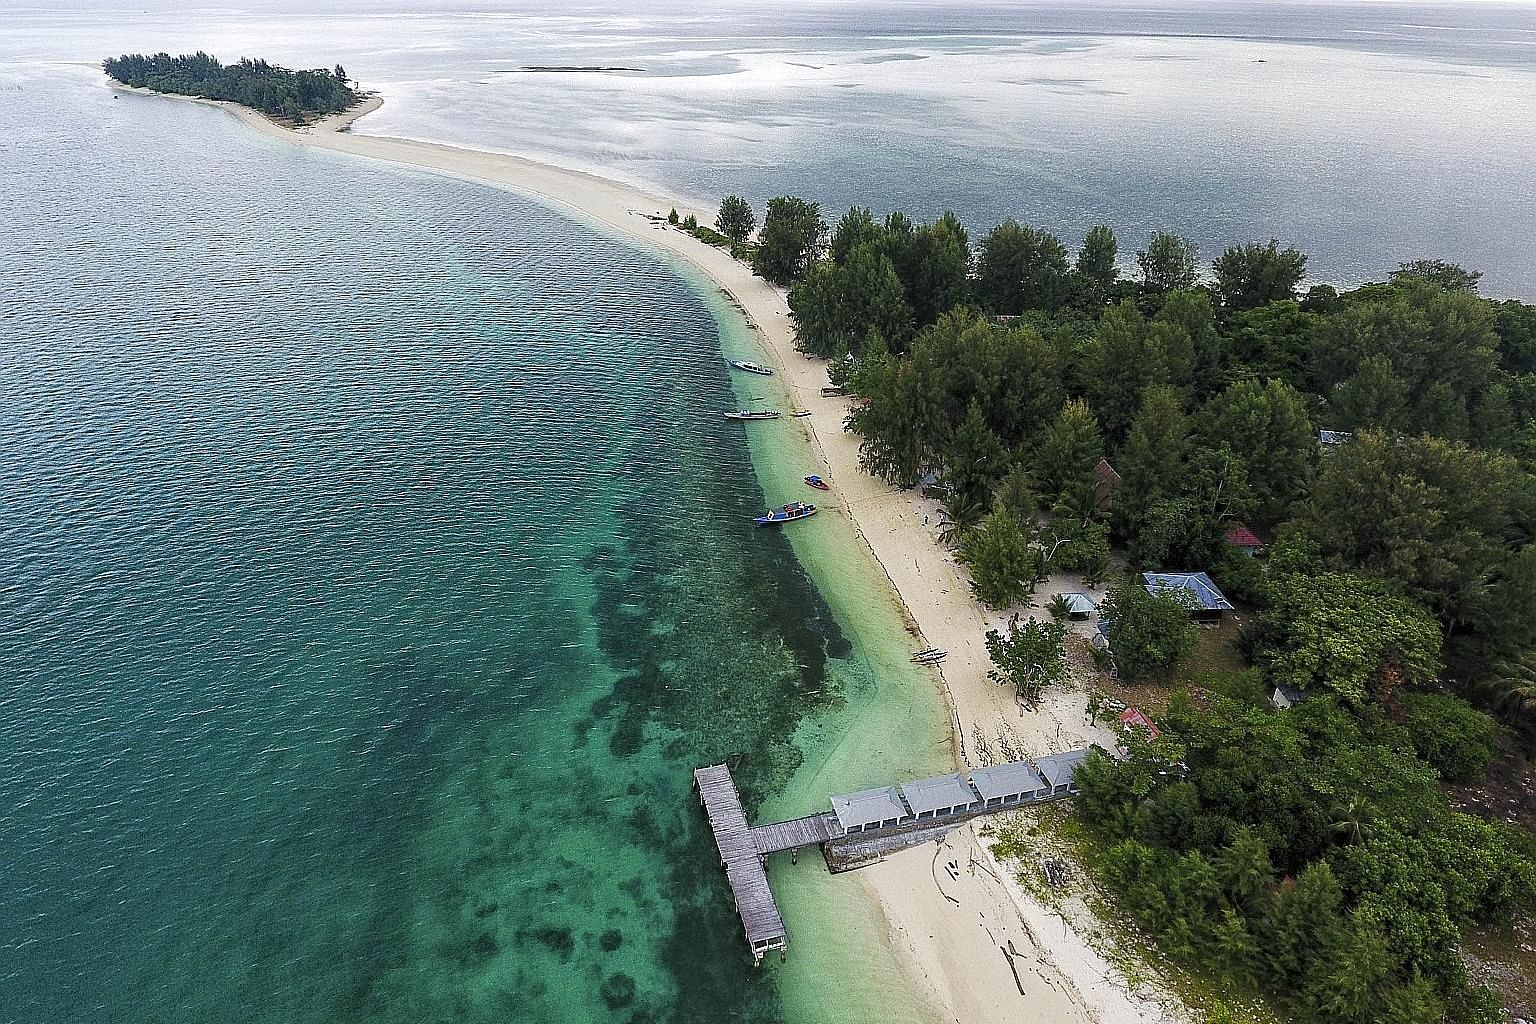 The Morotai Special Economic Zone in North Maluku is expected to generate 30,000 jobs when it is fully operational. Its operator, Jakarta-listed property developer Jababeka, has secured nearly US$170 million (S$232 million) in investments.